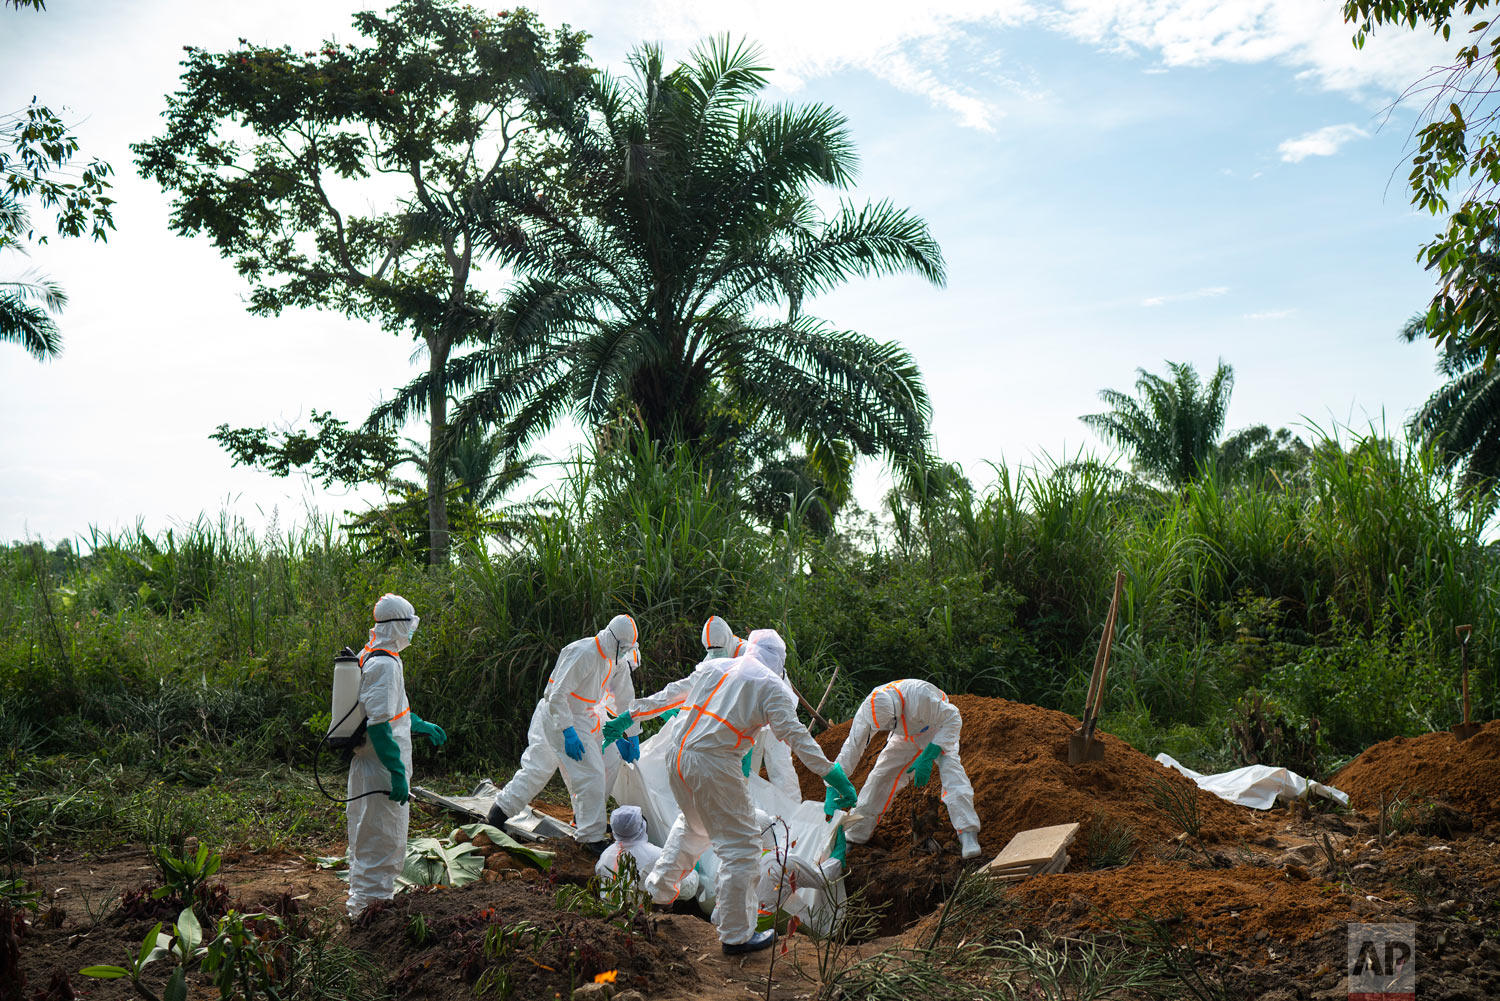 Burial workers burry the remains of Mussa Kathembo, an Islamic scholar who had prayed over those who were sick in Beni, Congo, July 14, 2019. Kathembo died of Ebola. (AP Photo/Jerome Delay)